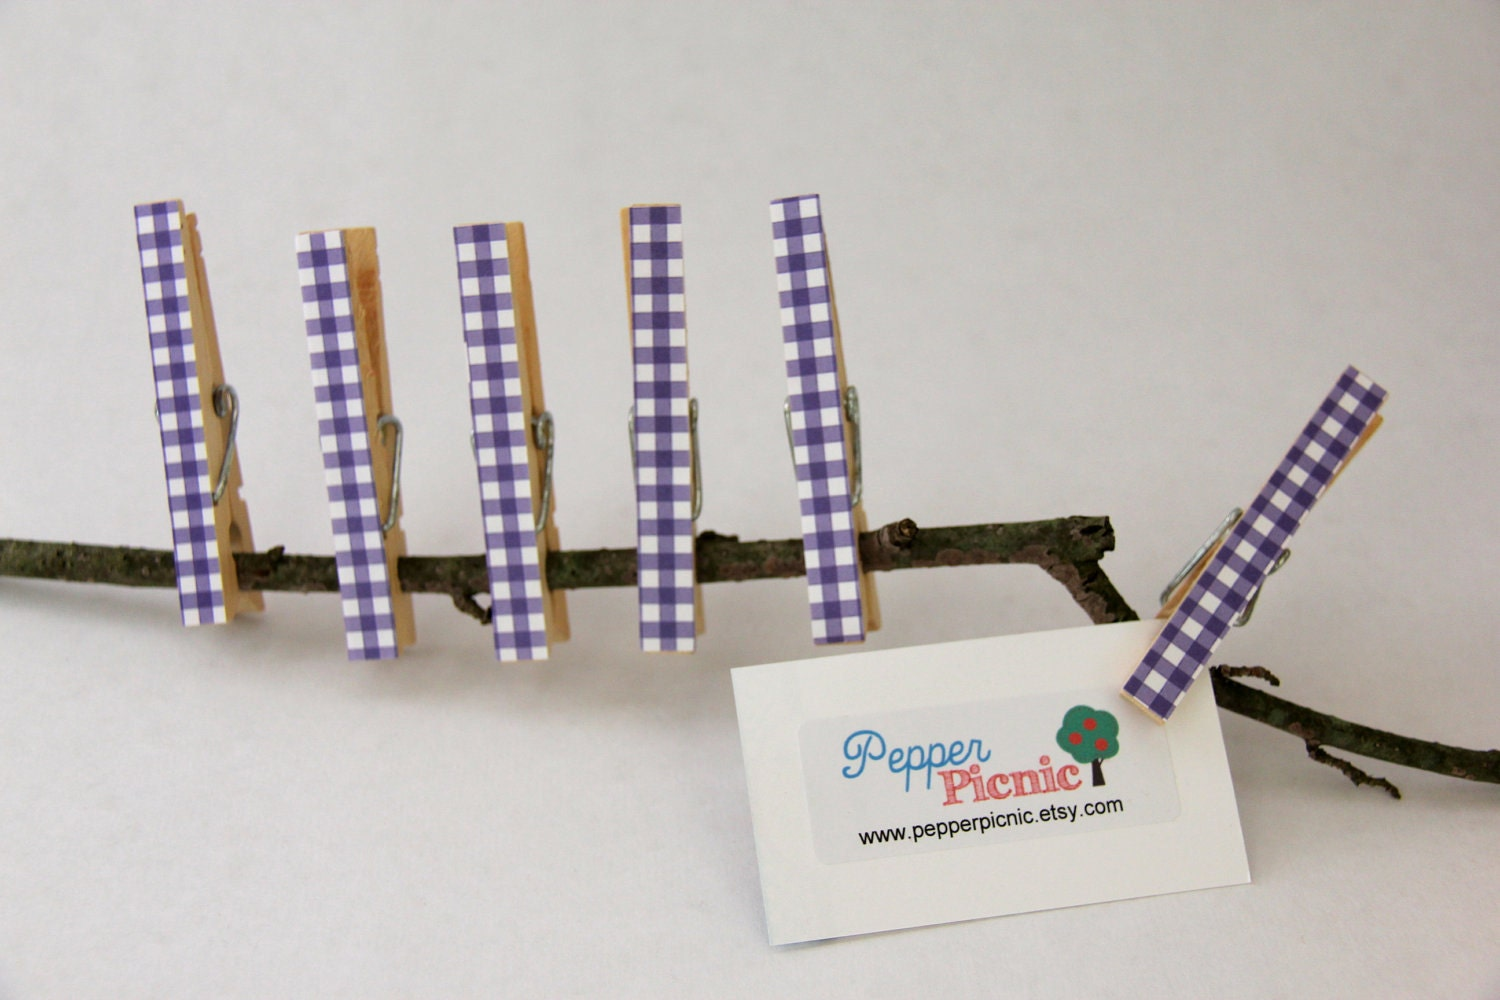 Decorated Wooden Clothes Pins/Pegs with Purple Gingham - Set of 6 - Pepperpicnic